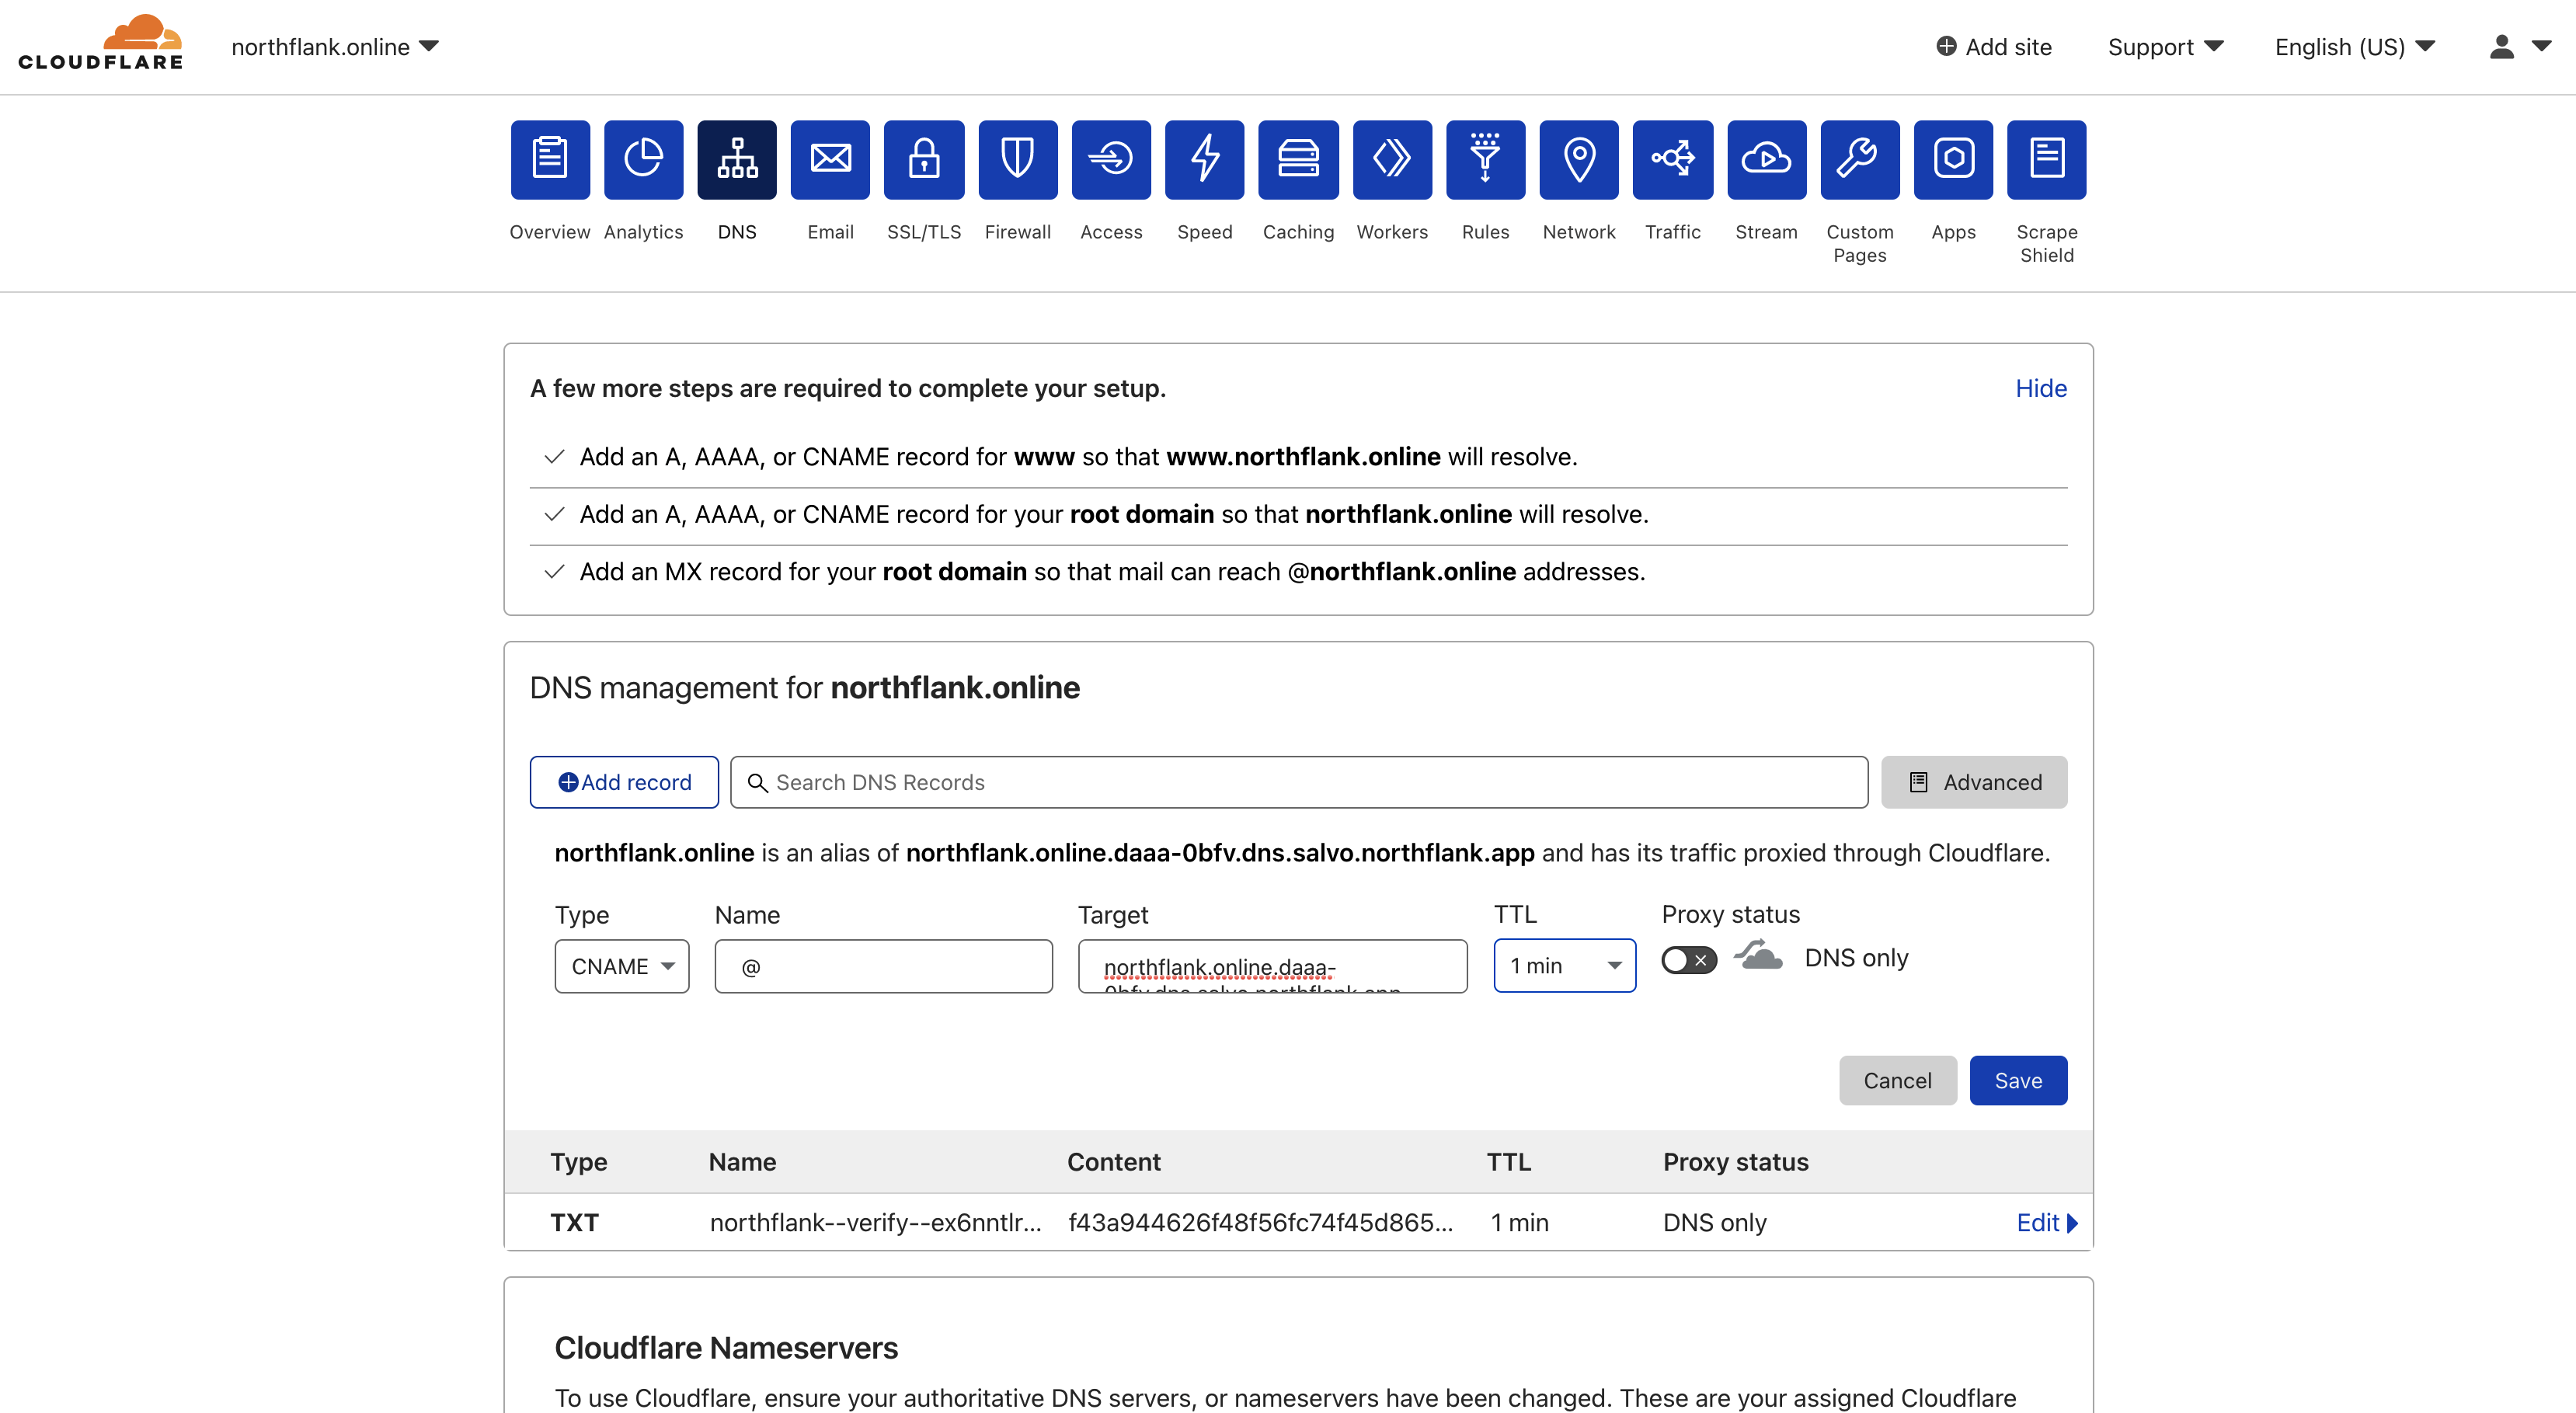 Adding a CNAME record to link an apex domain on Cloudflare